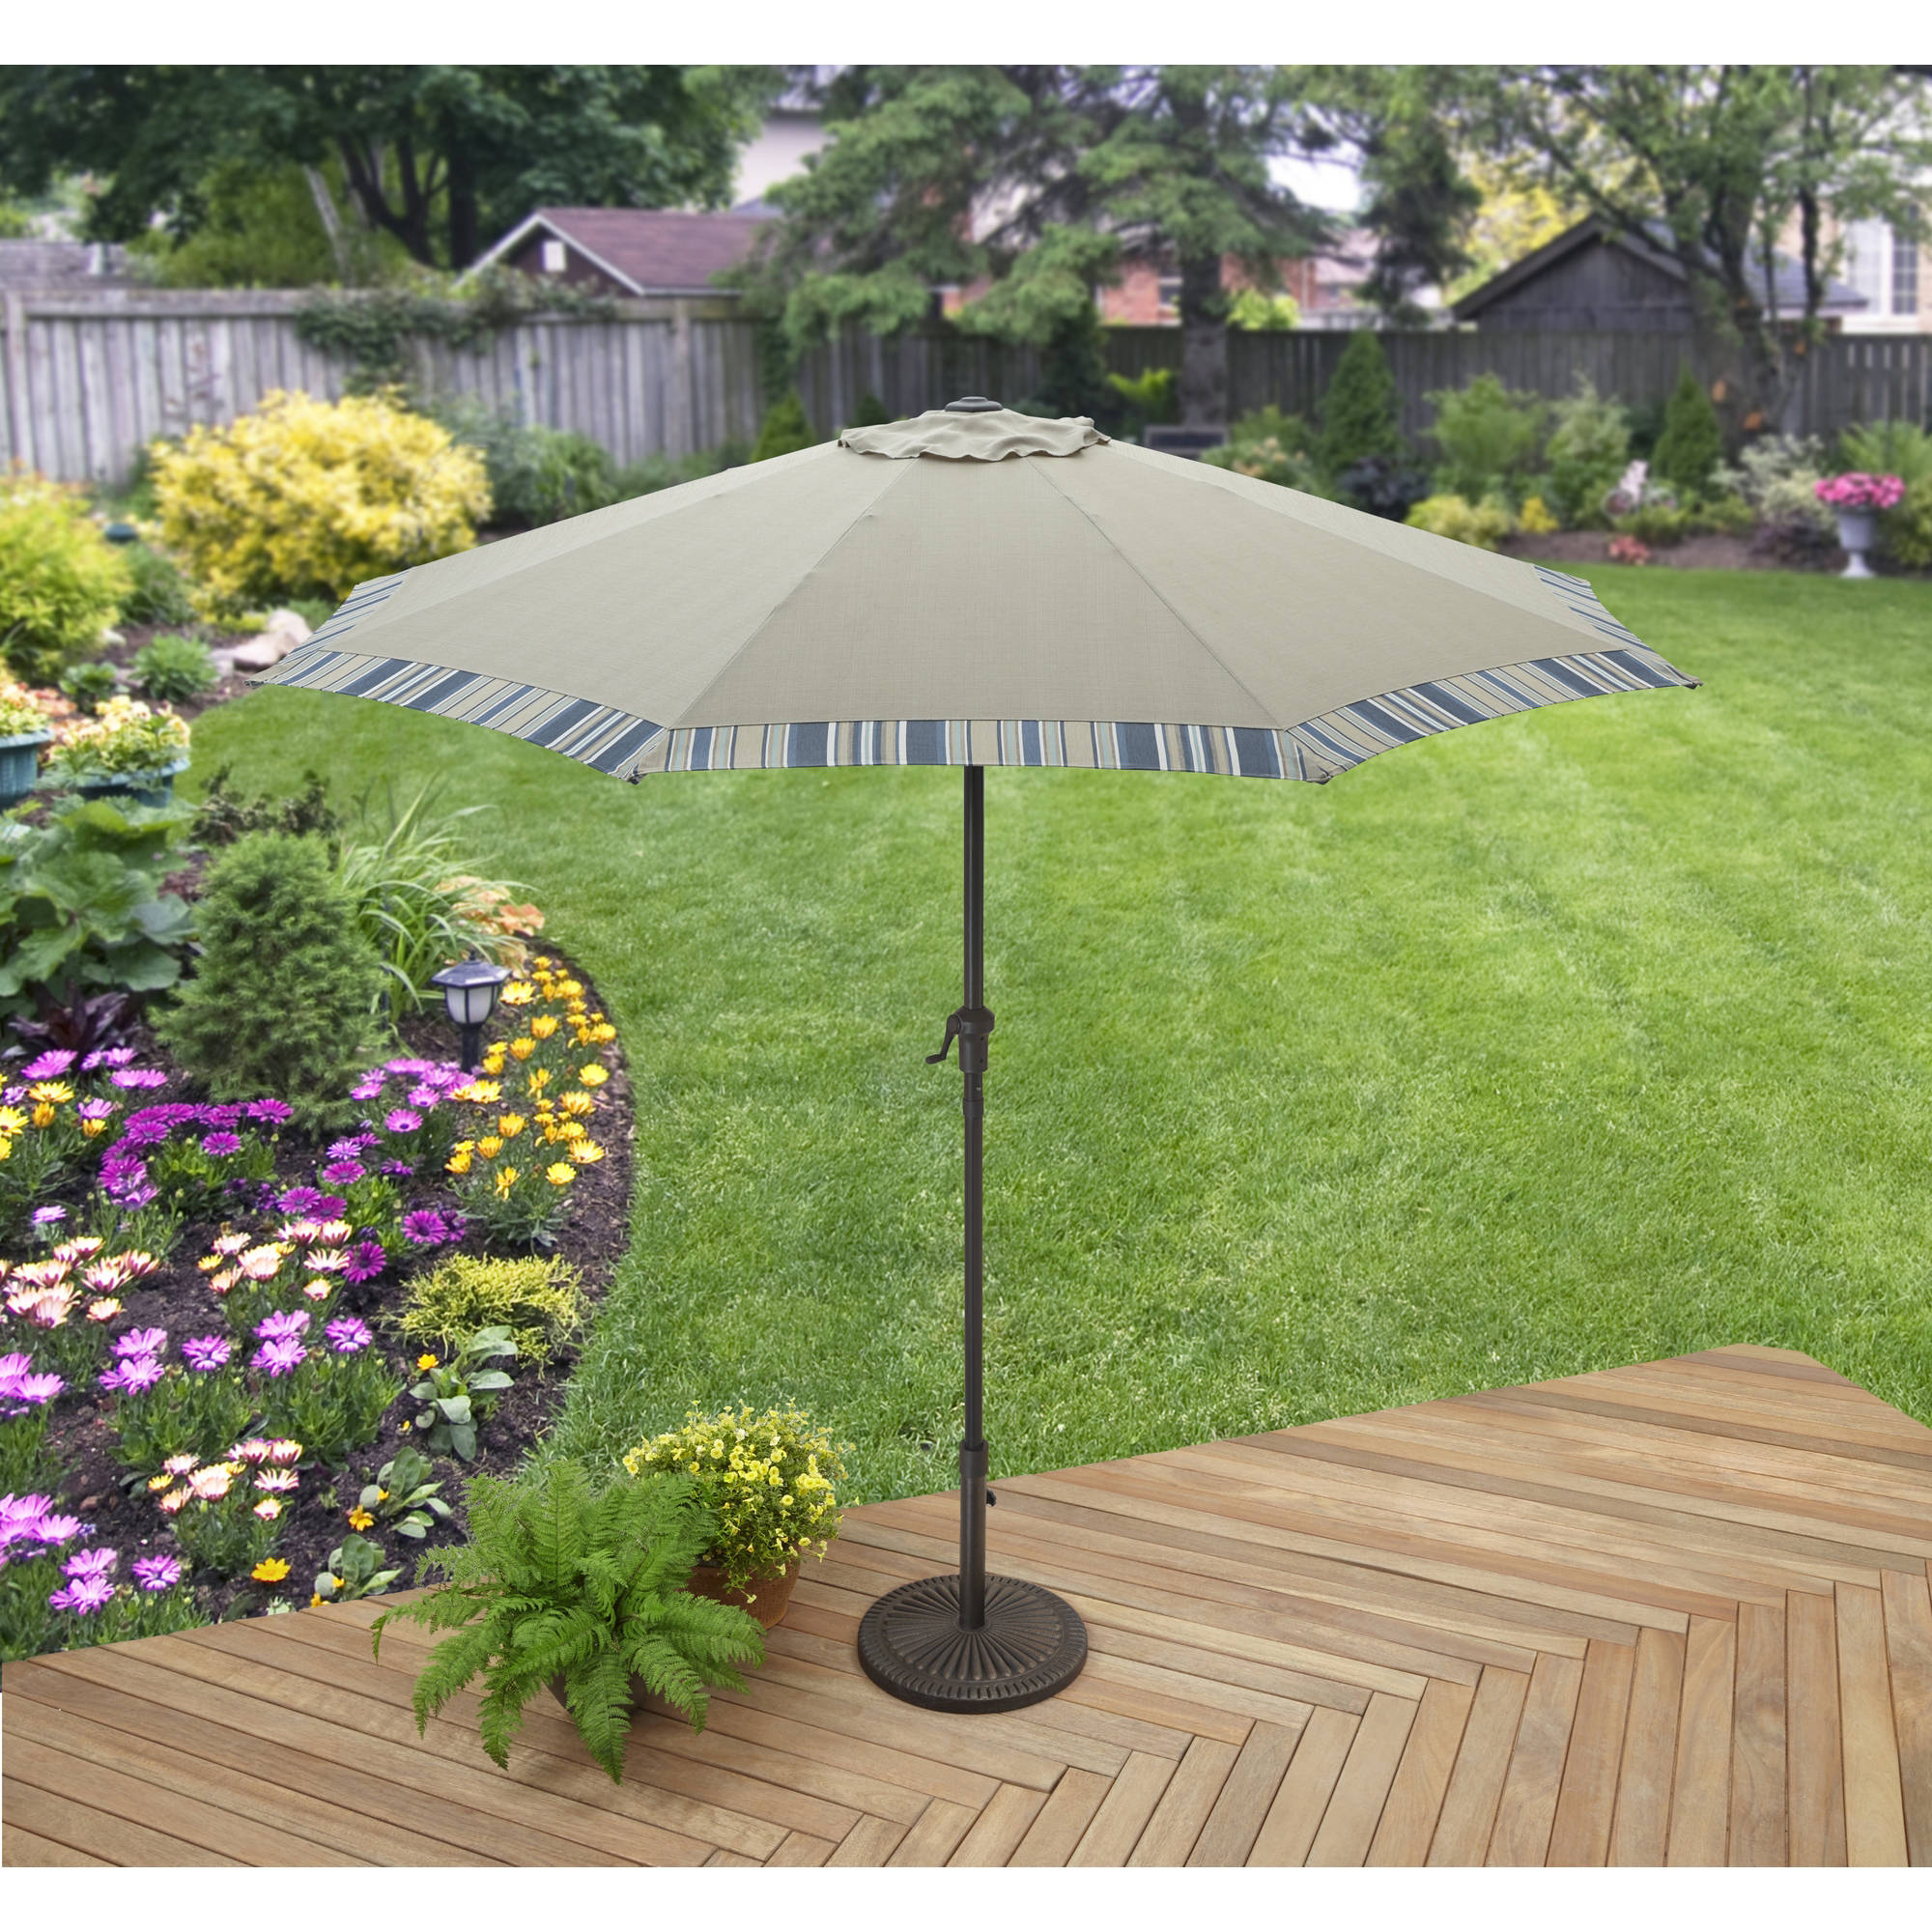 Better Homes and Gardens Avila Beach 9' Umbrella by